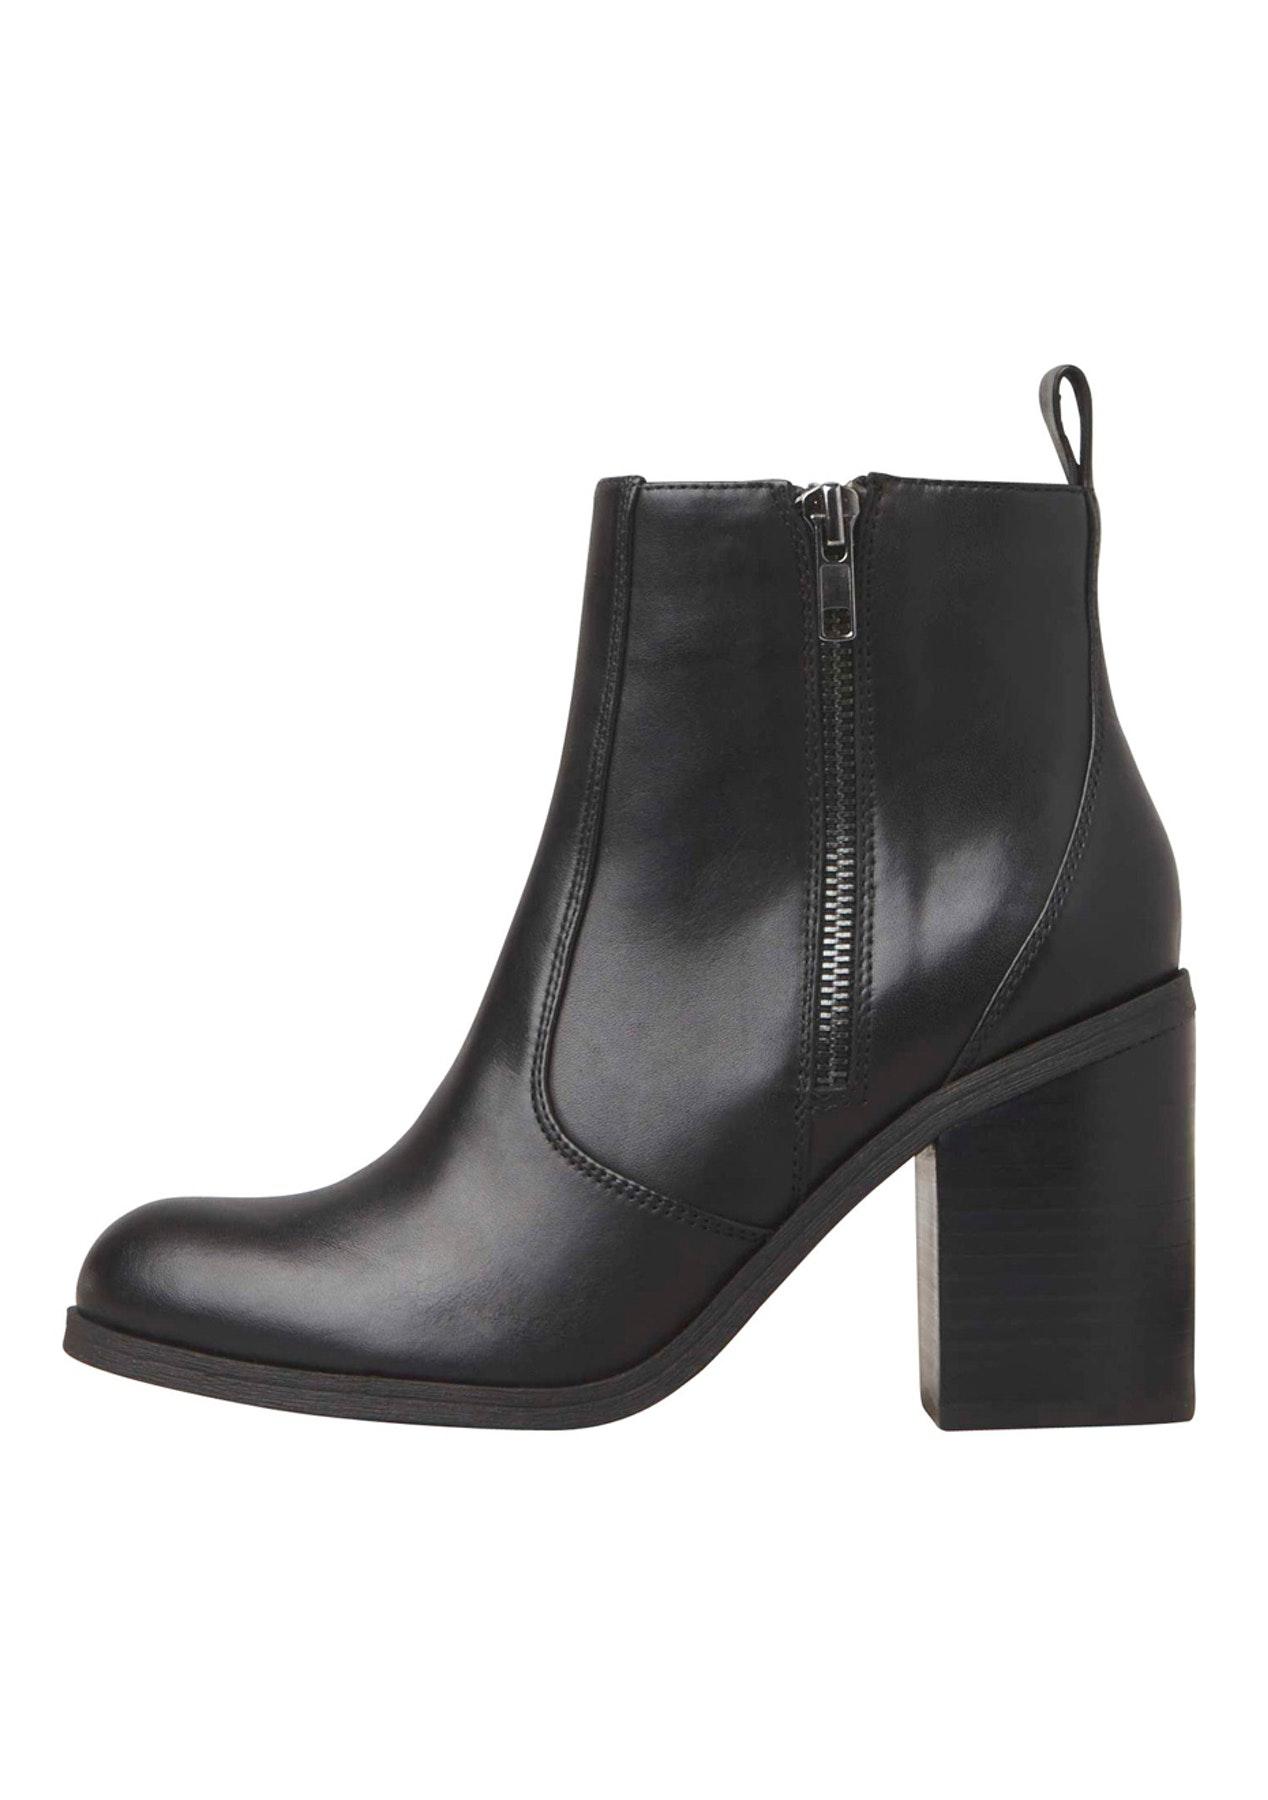 ed60acf20d3 Windsor Smith - Baran - Black Leather - Womens Shoe Sell Out - Onceit